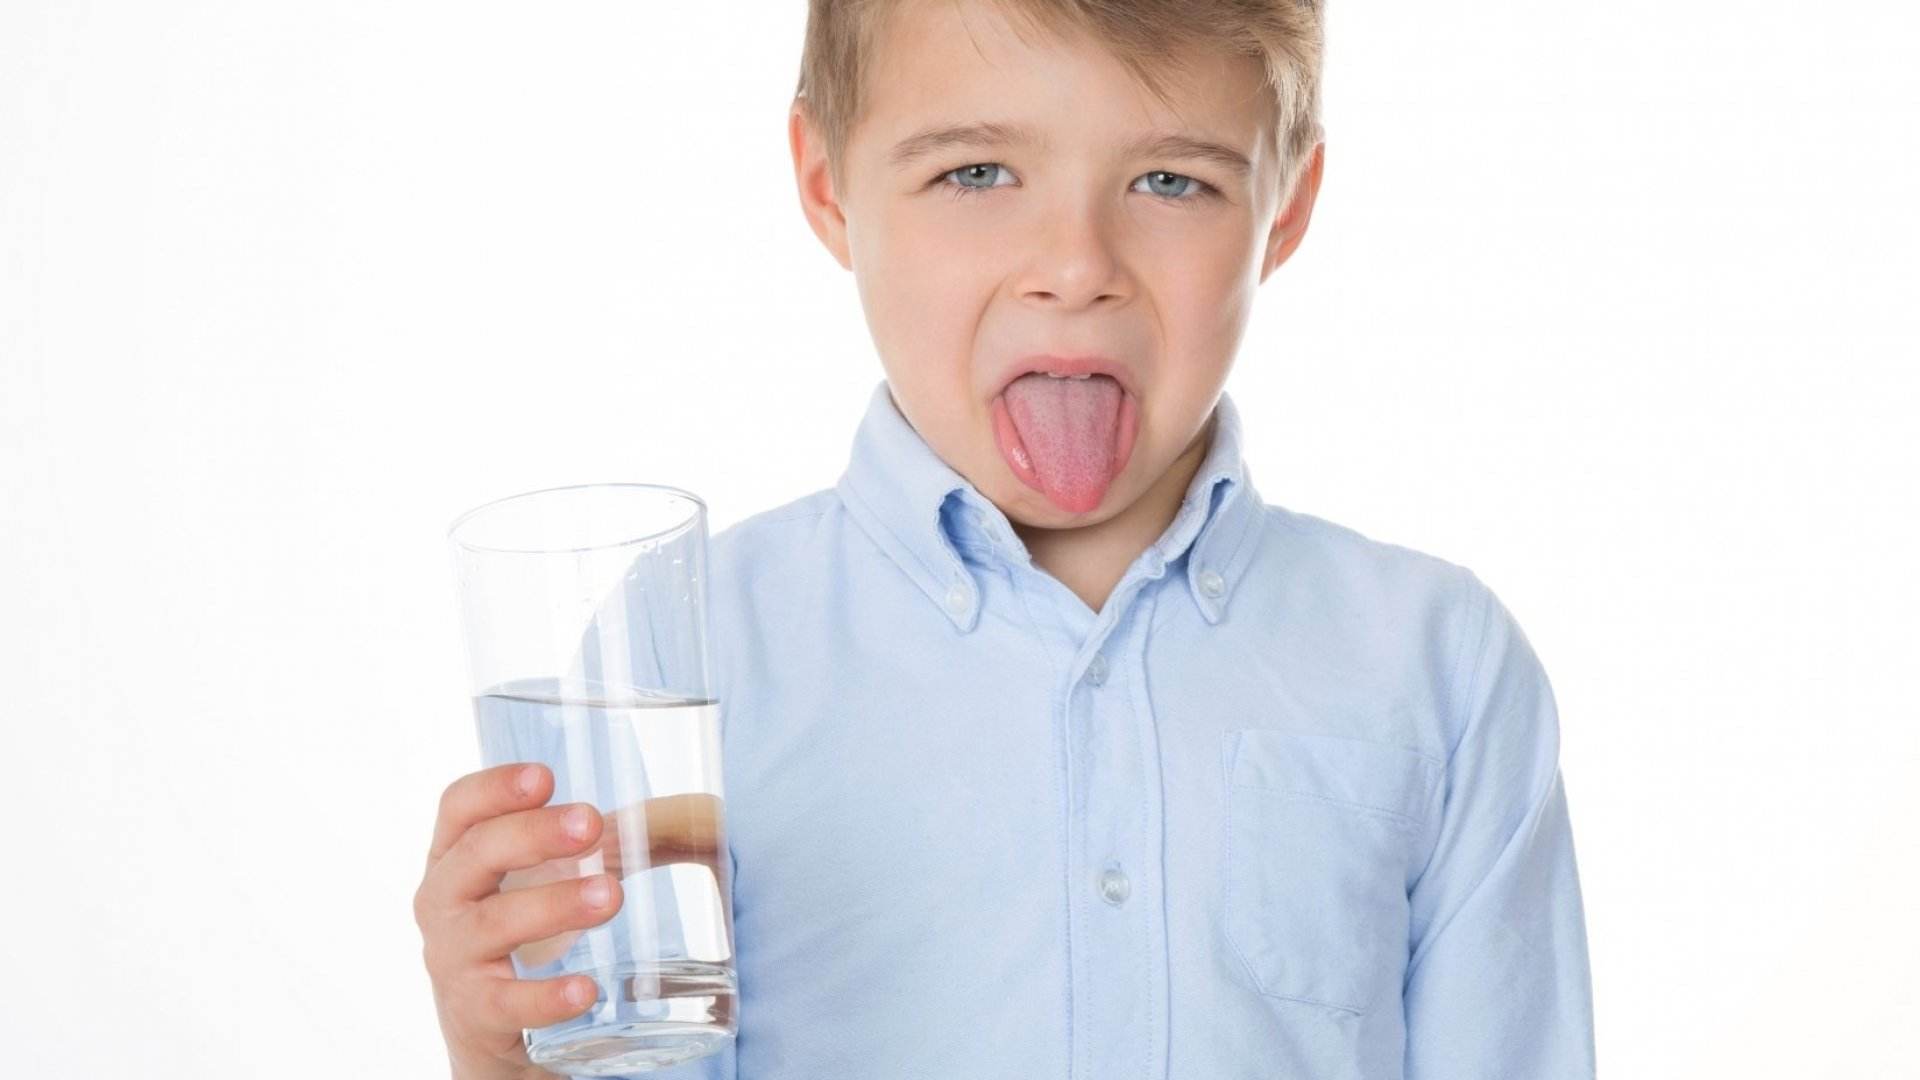 Not Drinking Enough Water? There's a Cup For That (Backed by Science)   Inc.com